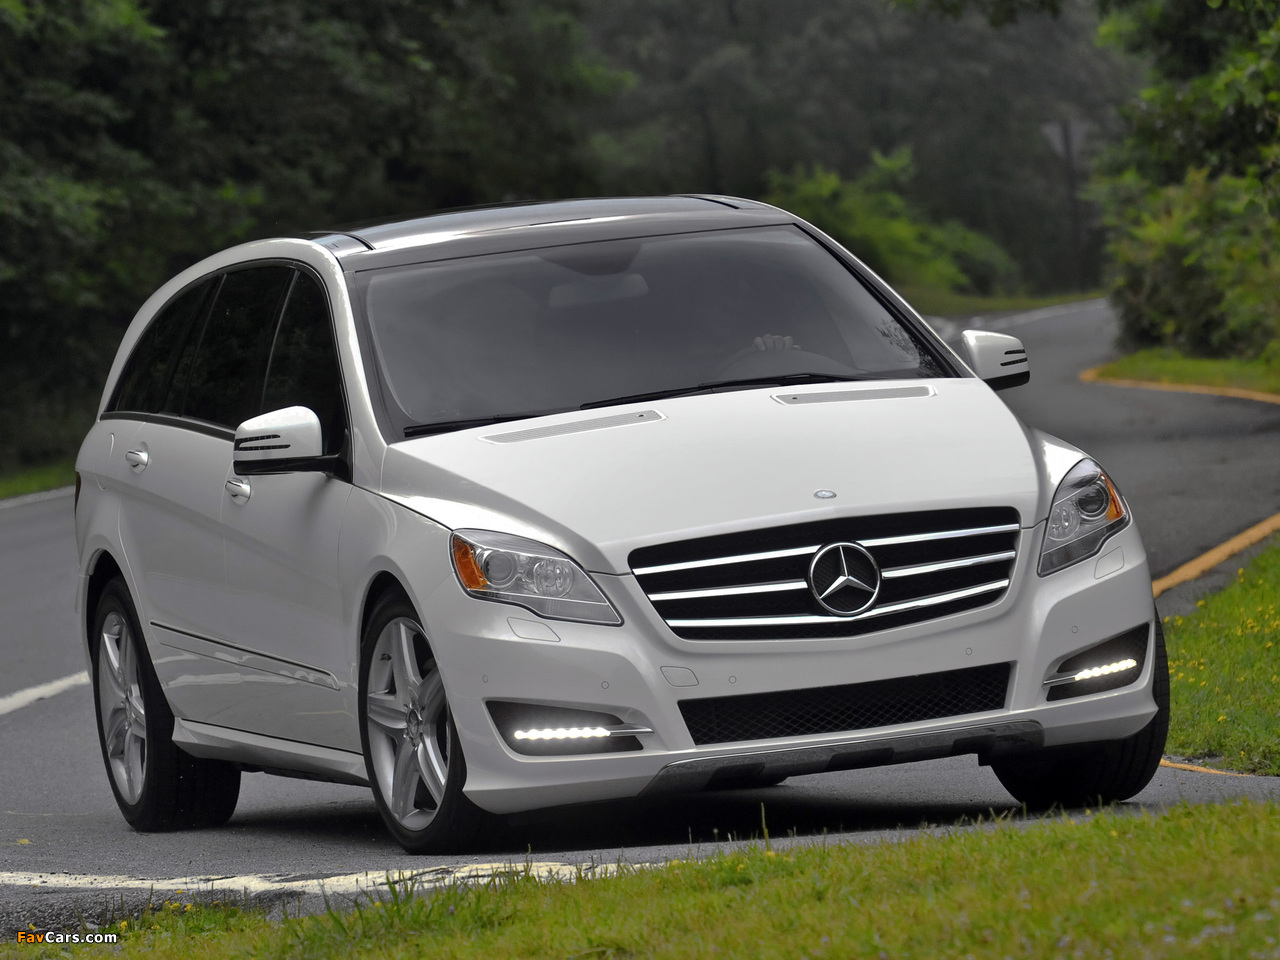 Benz 4matic Car >> Pictures of Mercedes-Benz R 350 4MATIC US-spec (W251) 2010 (1280x960)